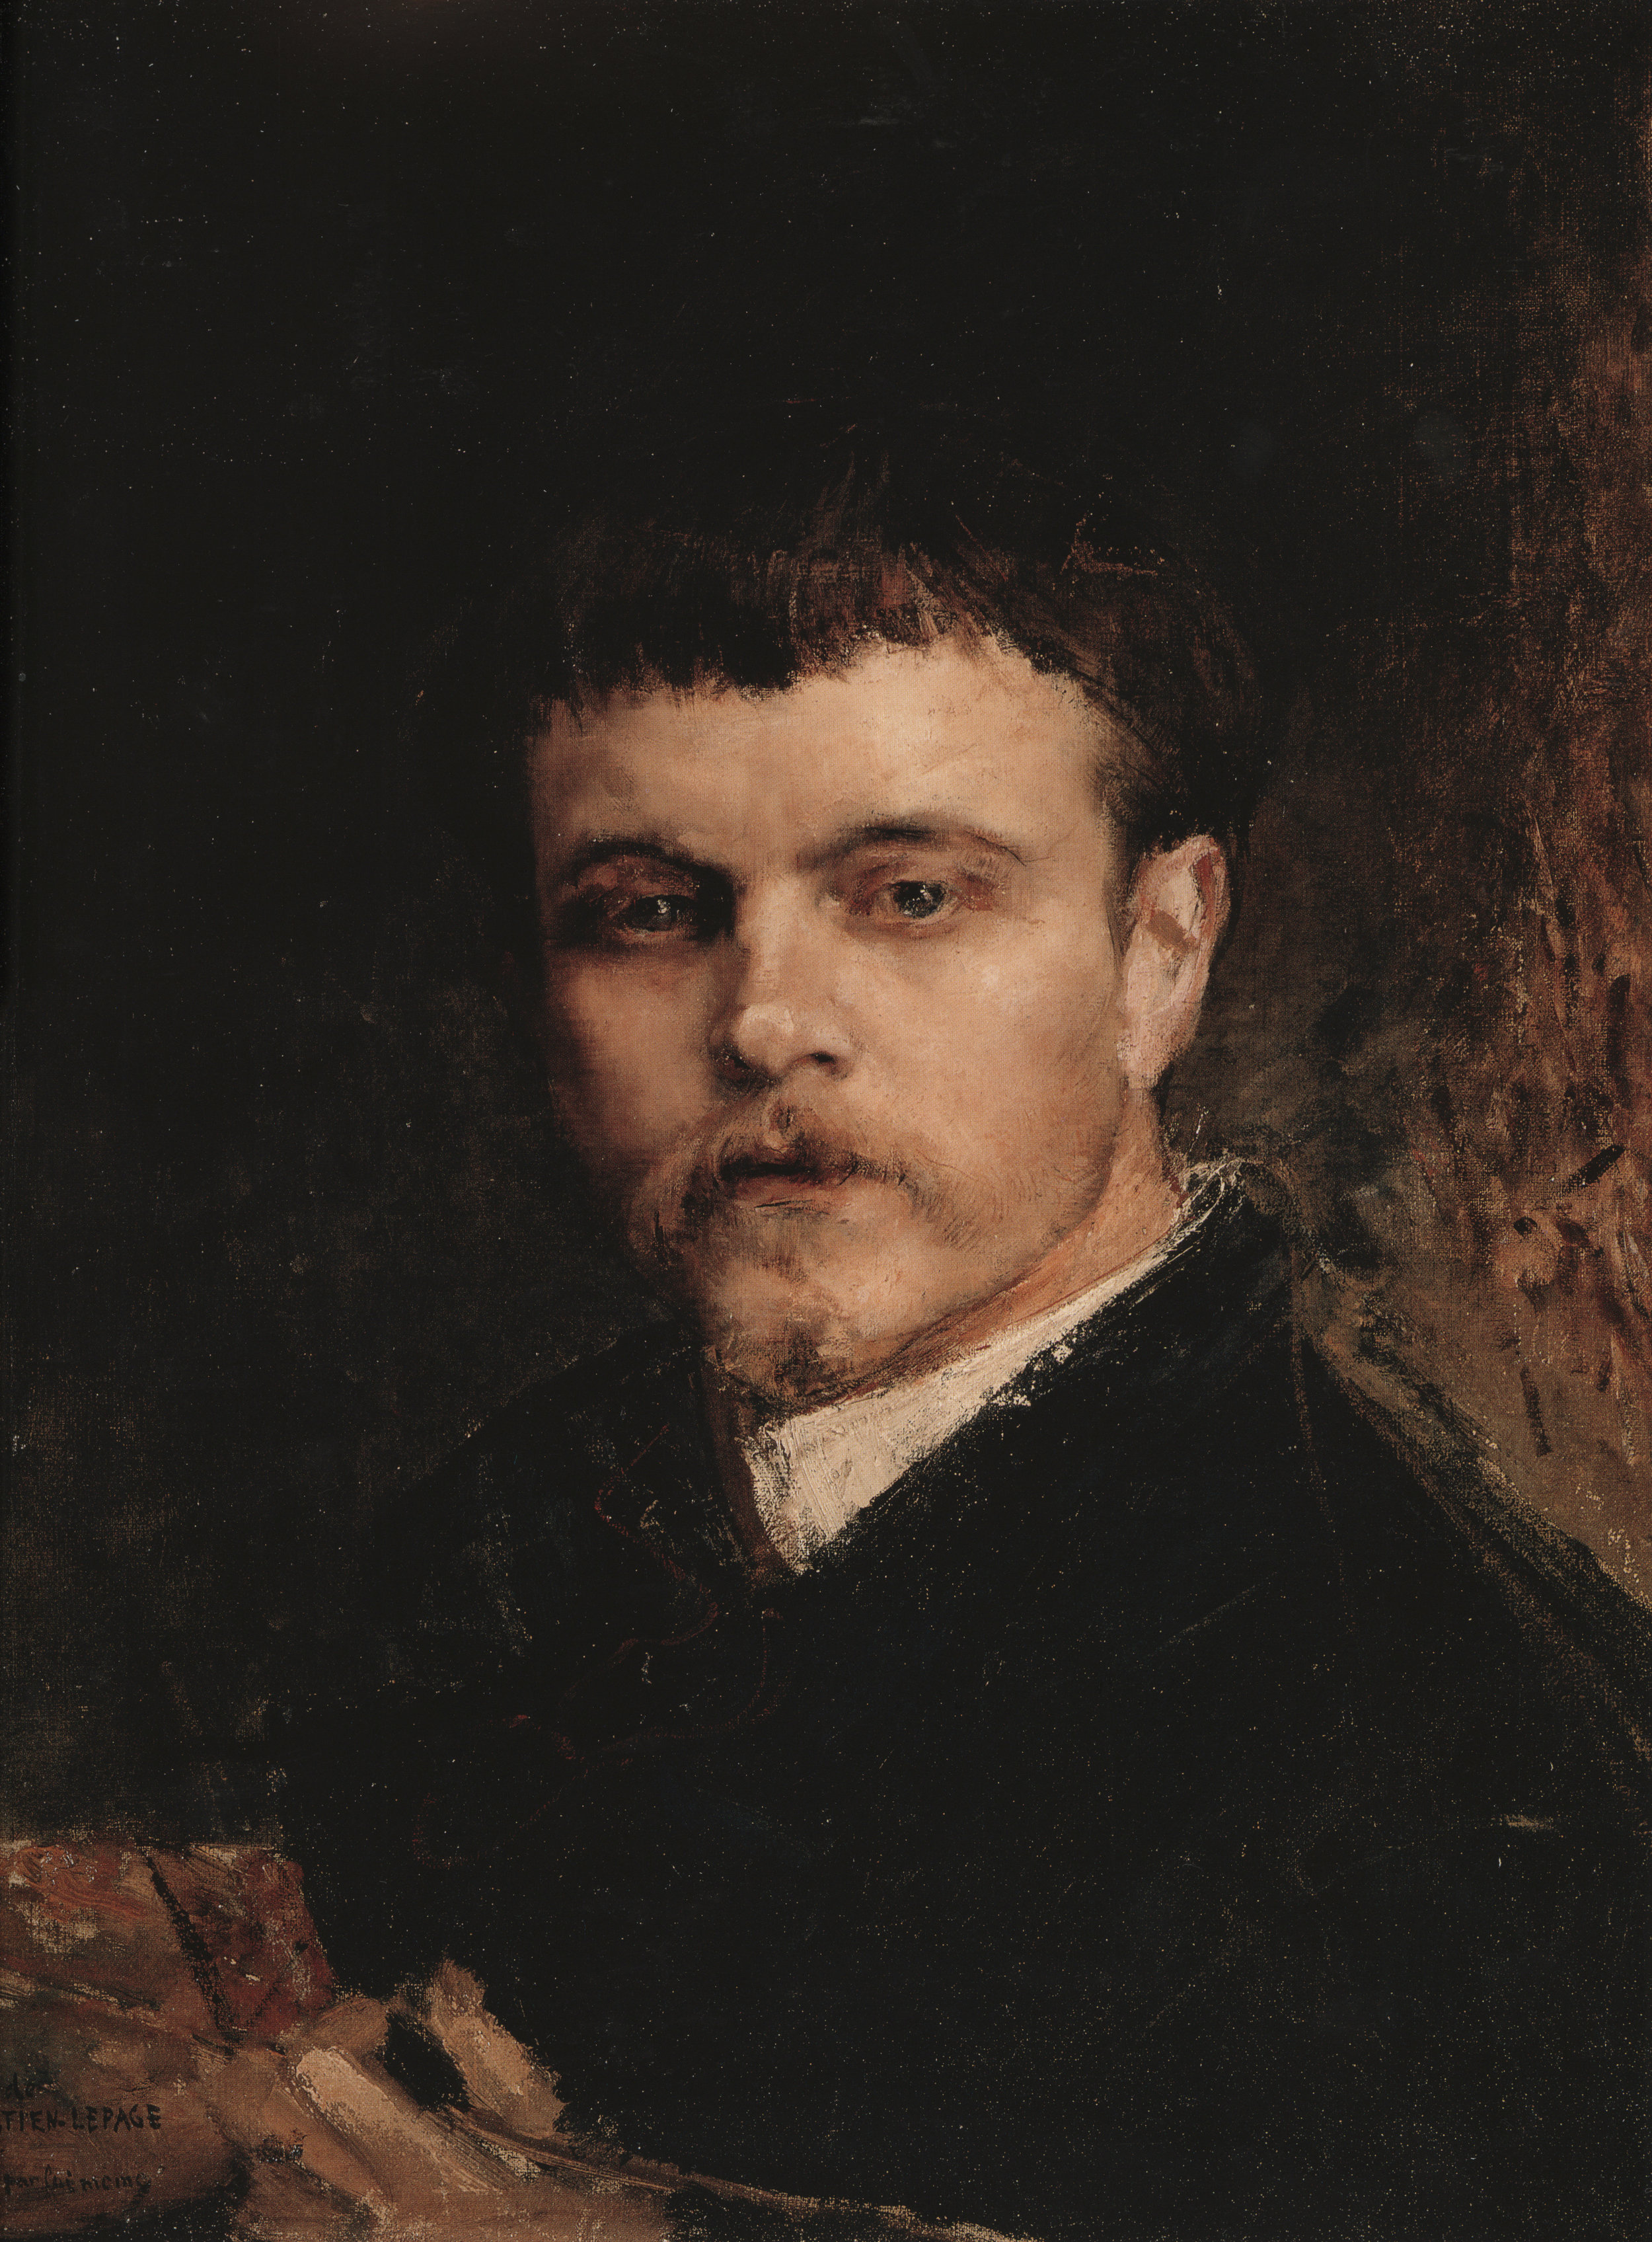 Traces of redrawing can be seen around the mouth and eyebrow and collar in this self-portrait (Step 3). The ear and hand retain the clear and bold modeling of step 2.